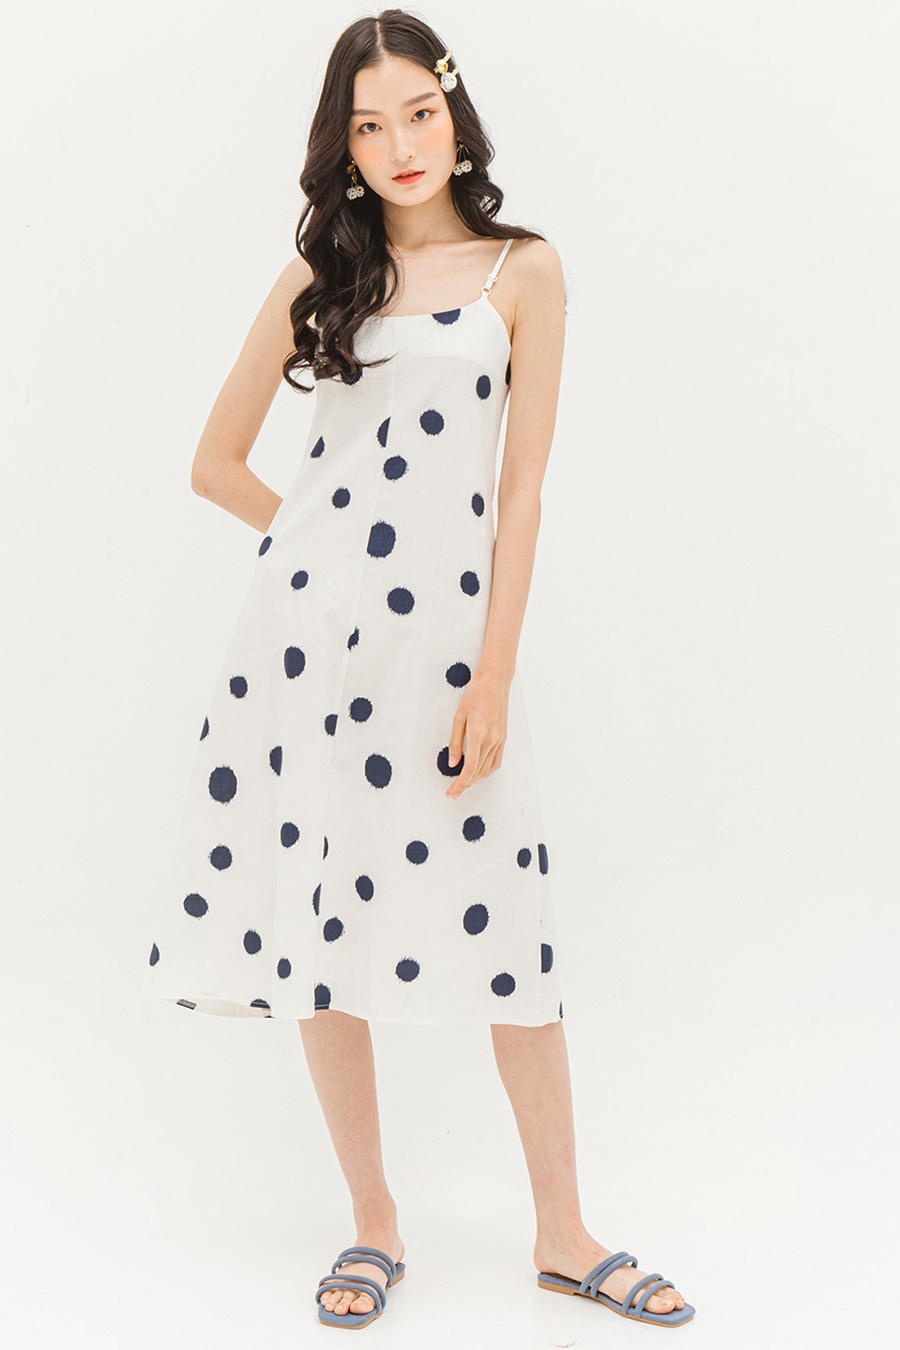 CASSIA DRESS - DOTTIE